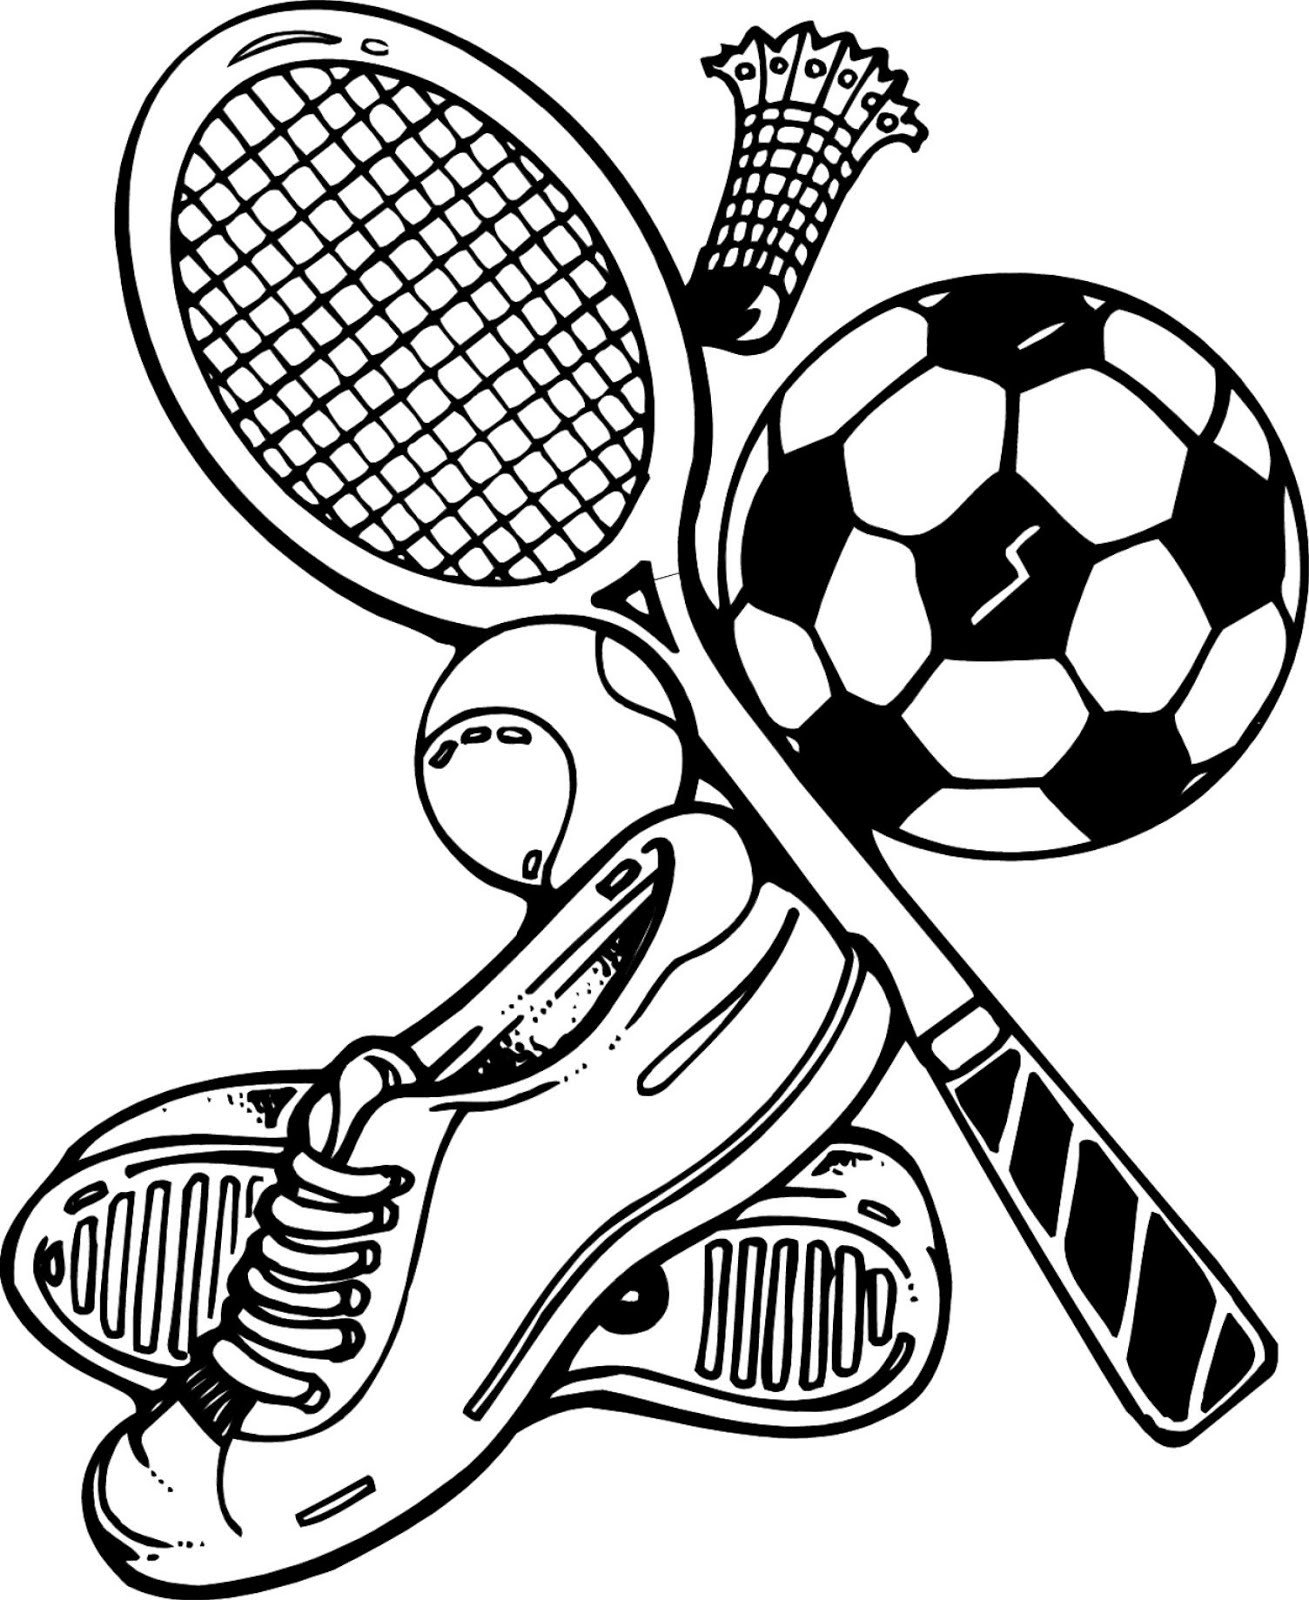 sports pictures to color sports equipment drawing at getdrawings free download sports pictures to color